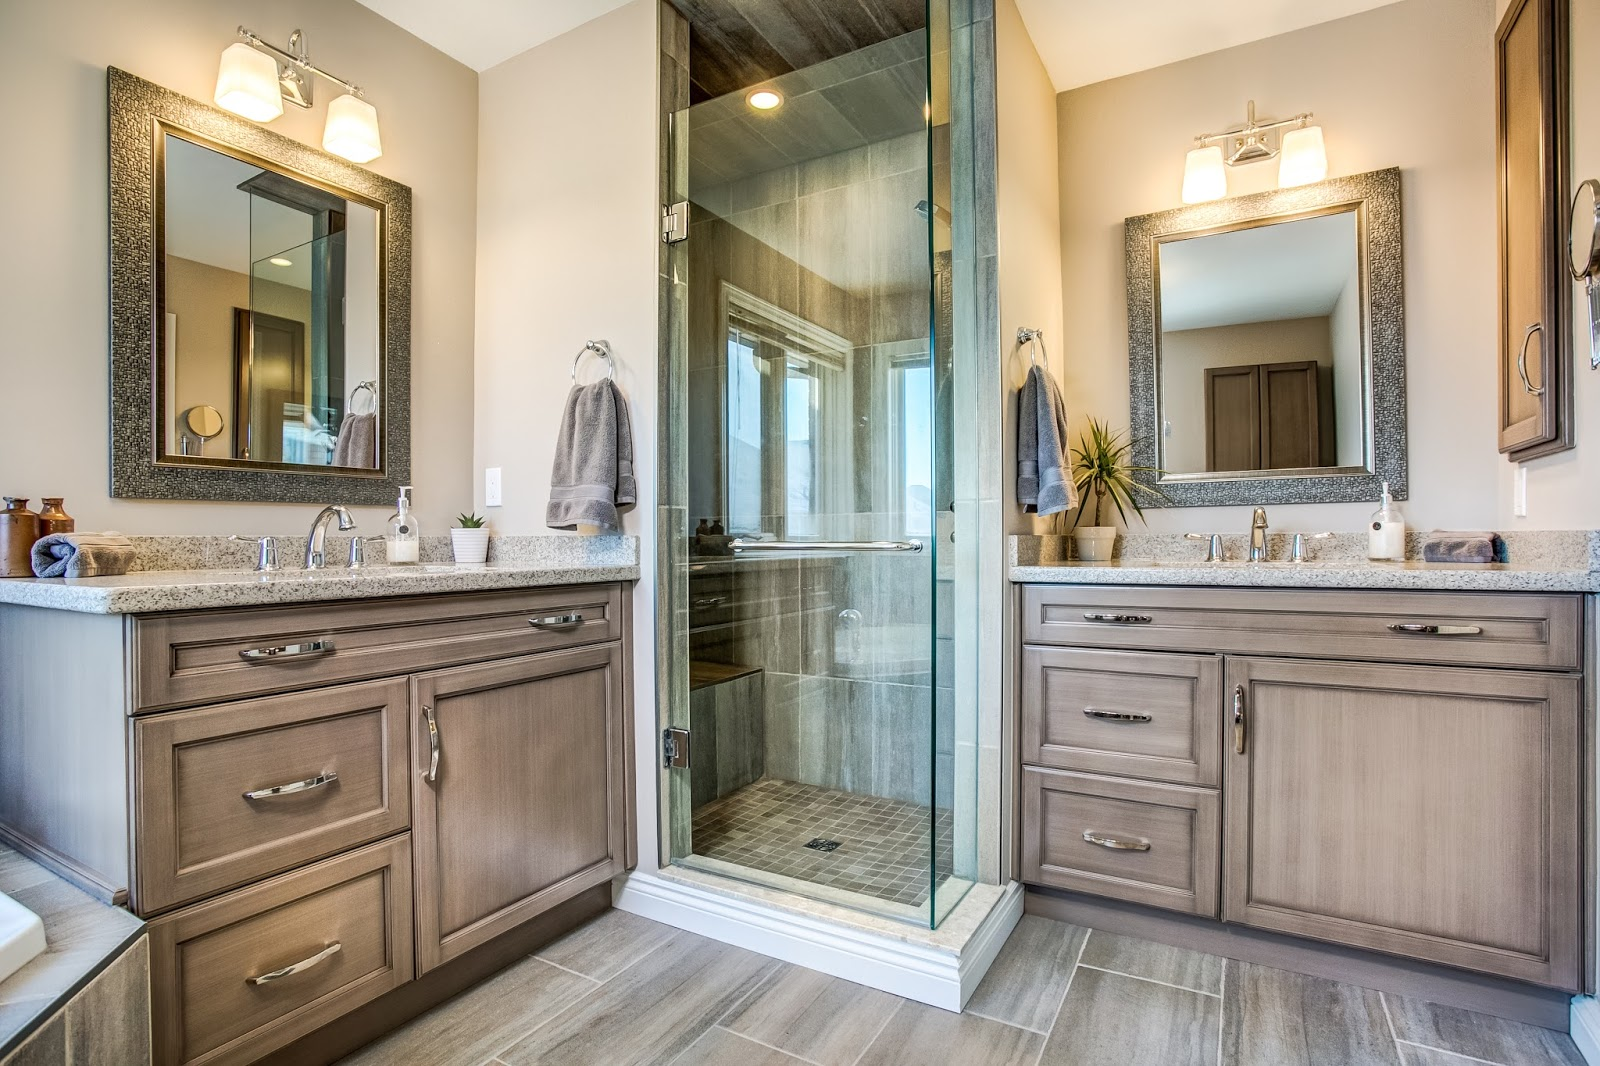 Bathroom Remodel Cost: Budget, Average, Luxury